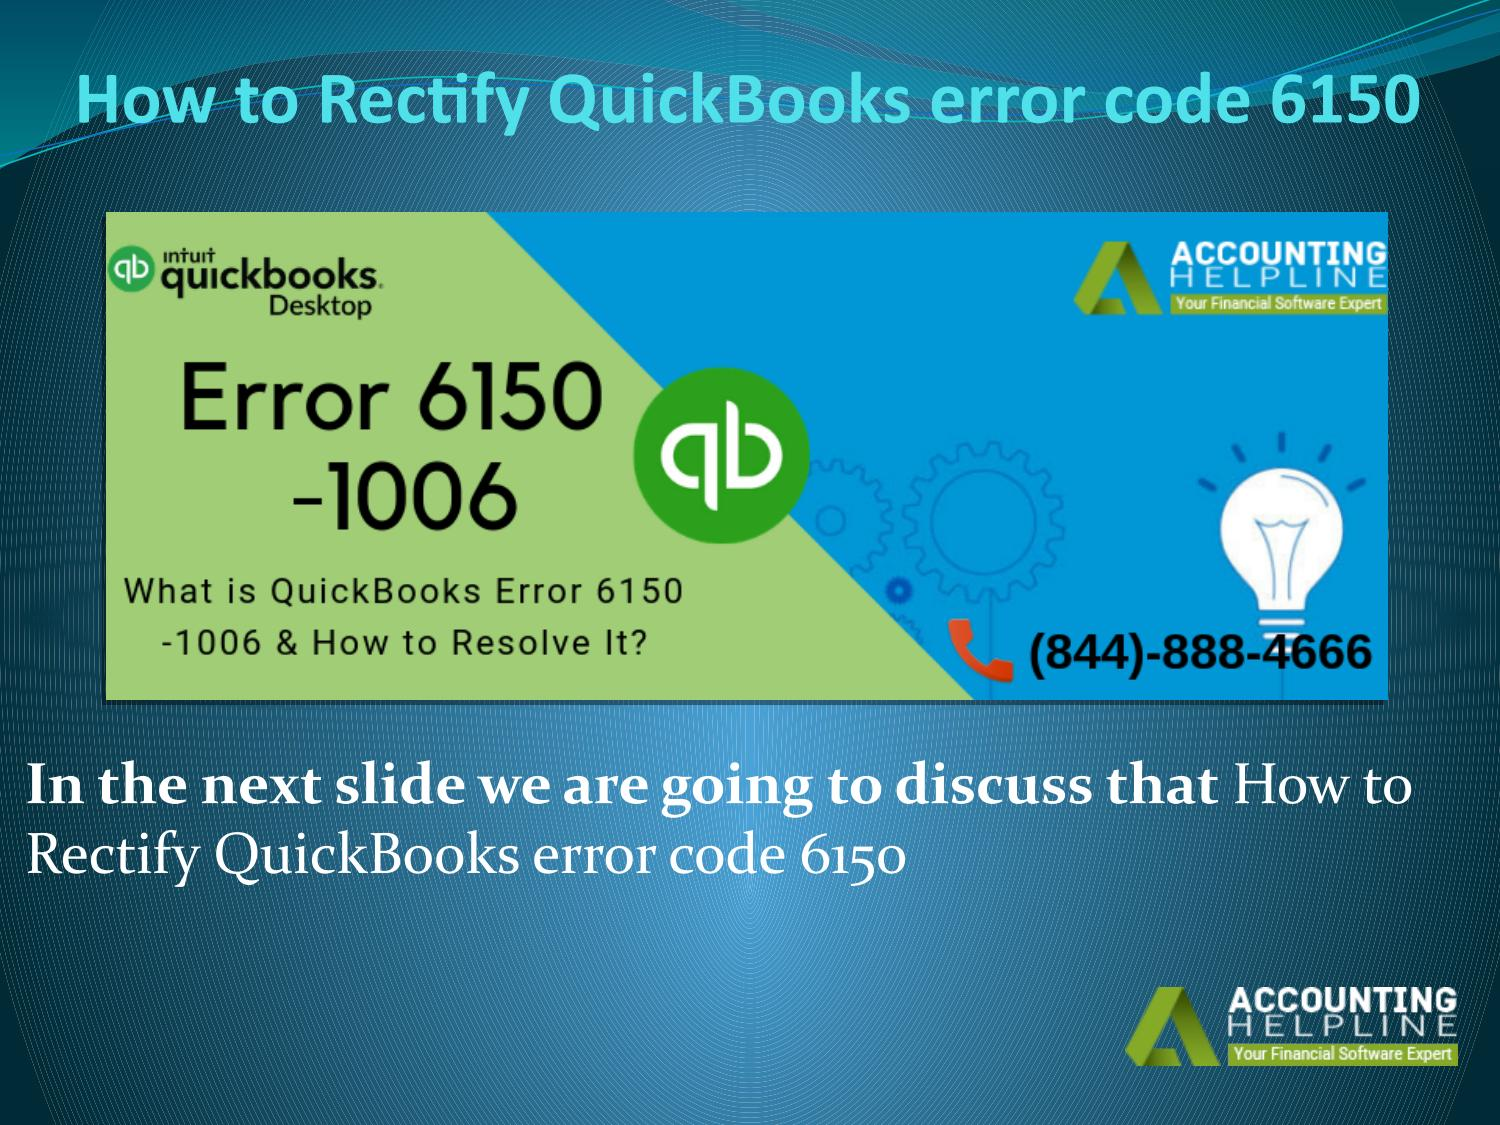 How to Fix Error Code 1006 in QuickBooks Desktop by